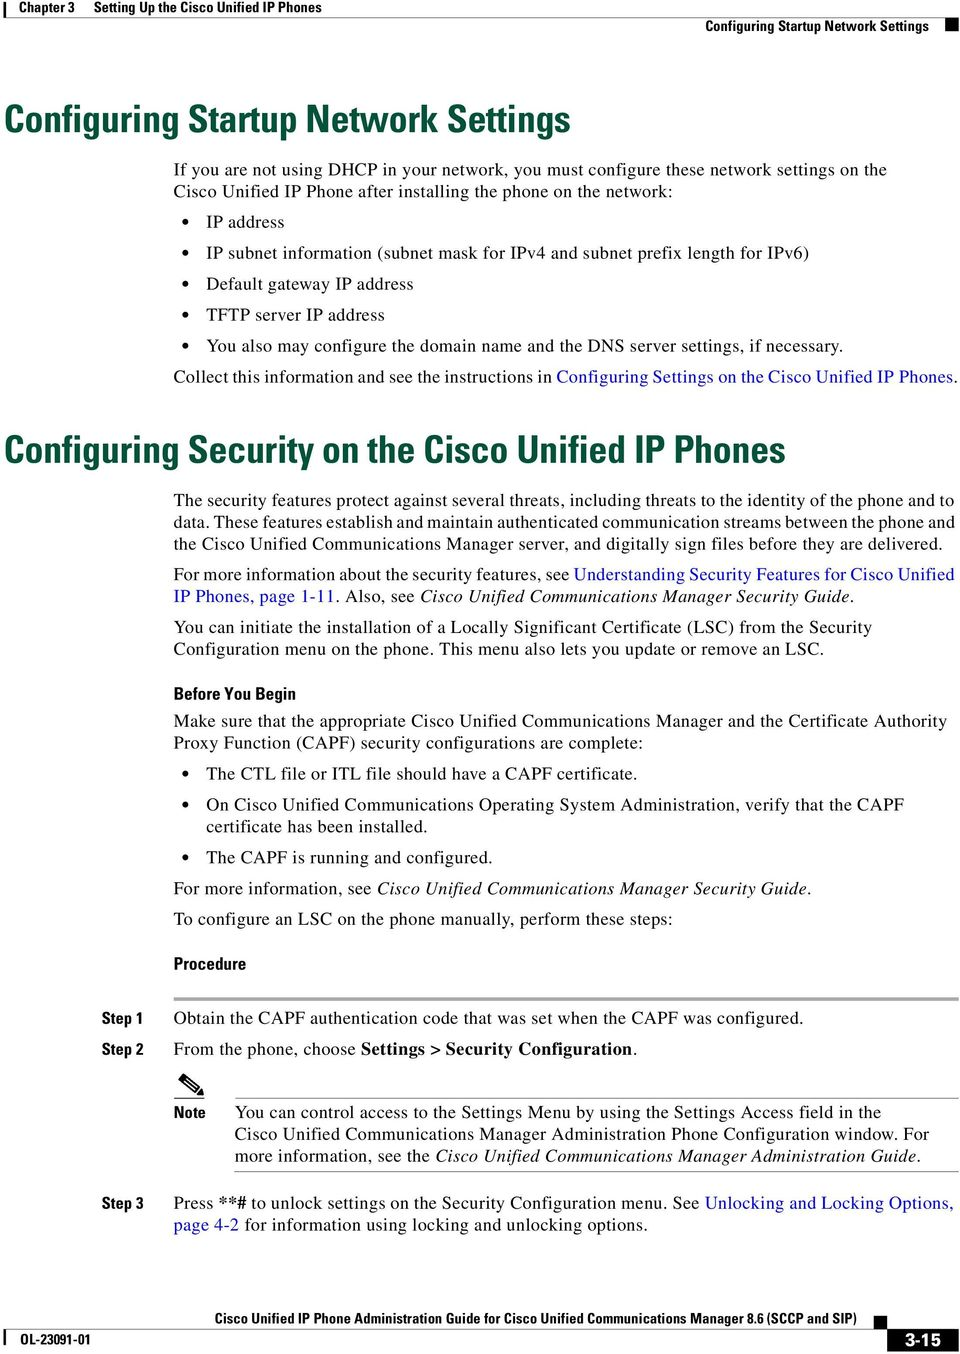 Setting Up the Cisco Unified IP Phones - PDF